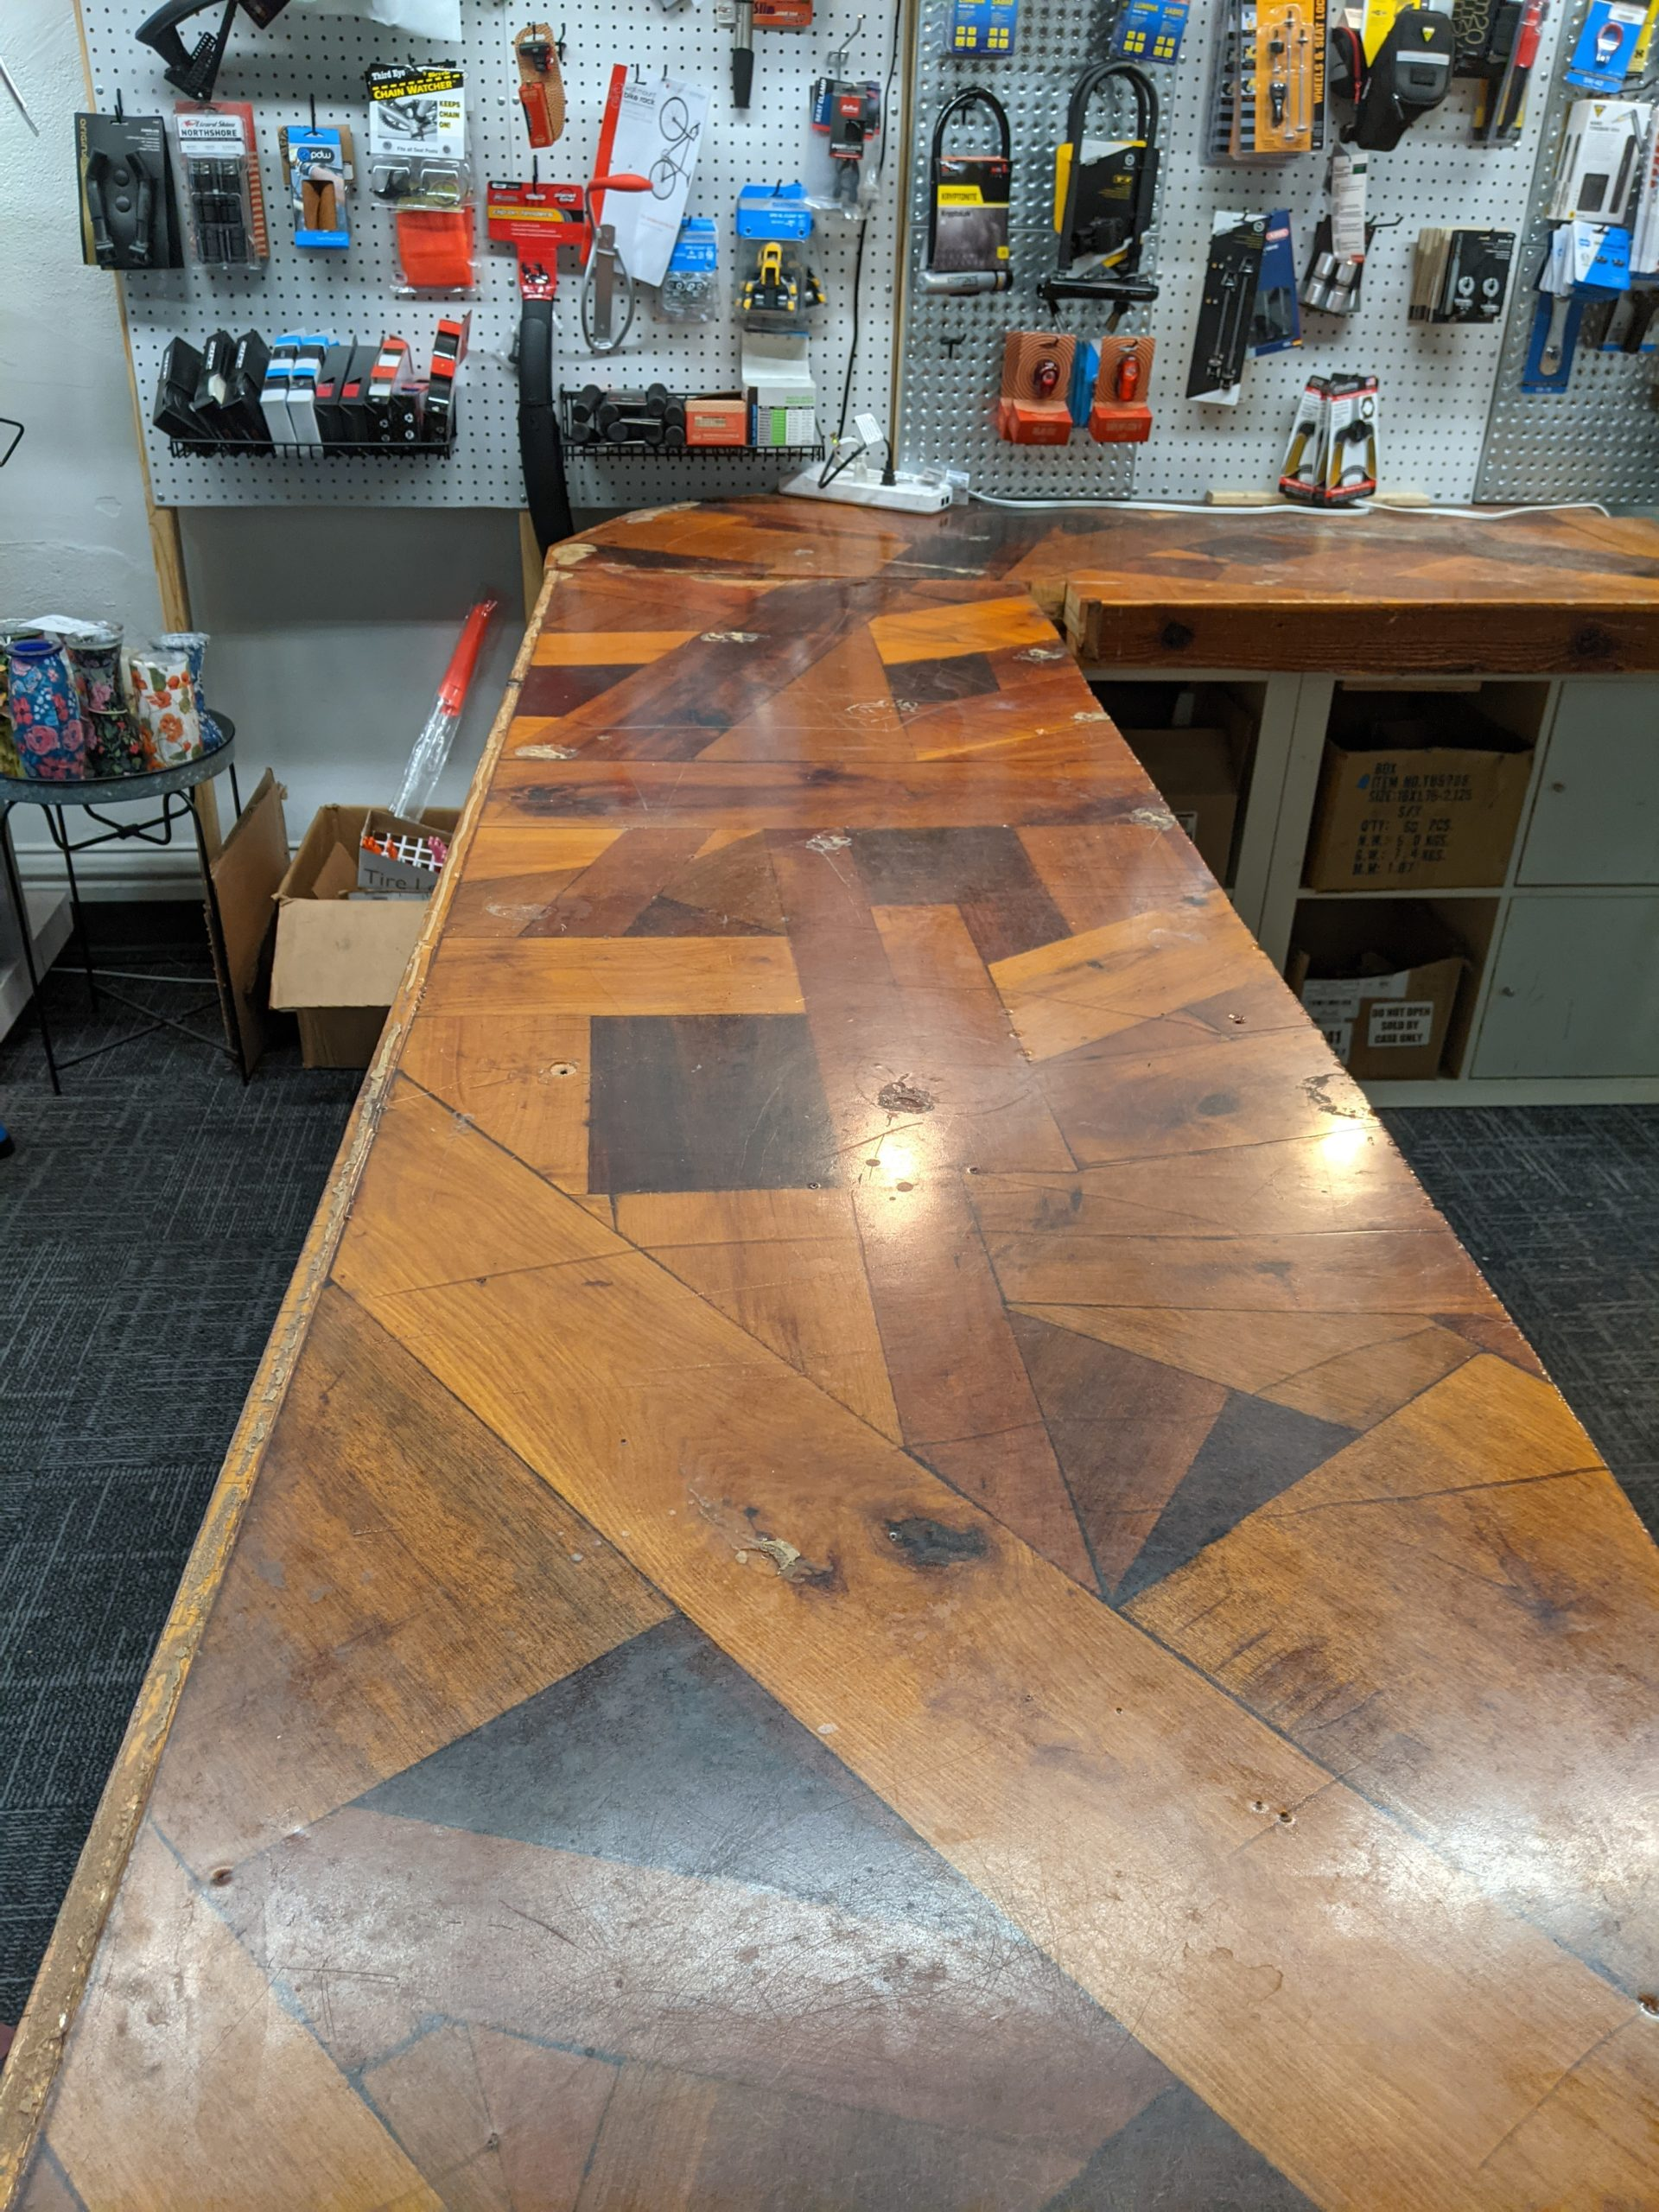 Photo of counter top showing wood pattern